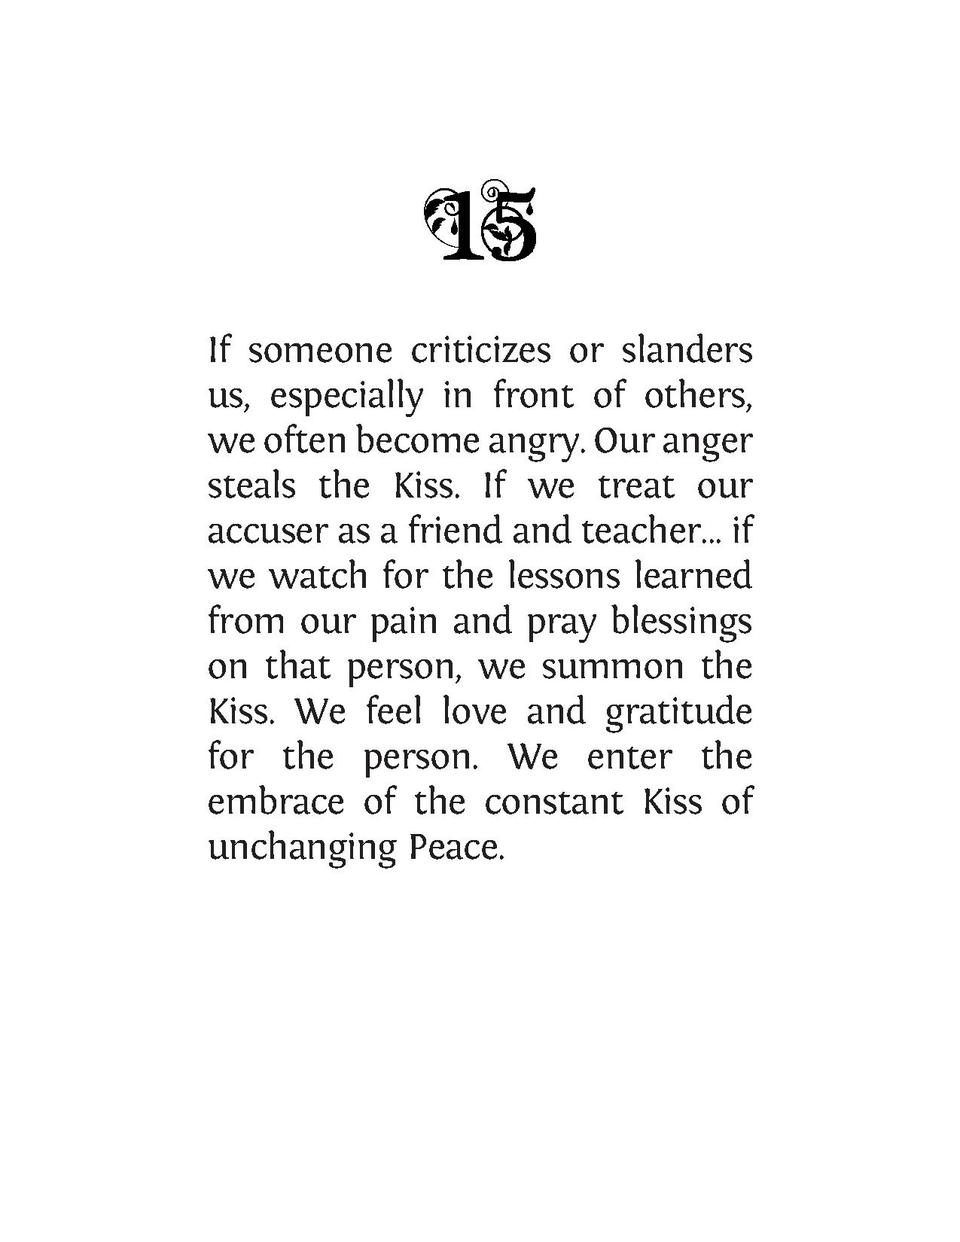 If someone criticizes or slanders us, especially in front of others, we often become angry. Our anger steals the Kiss. If ...